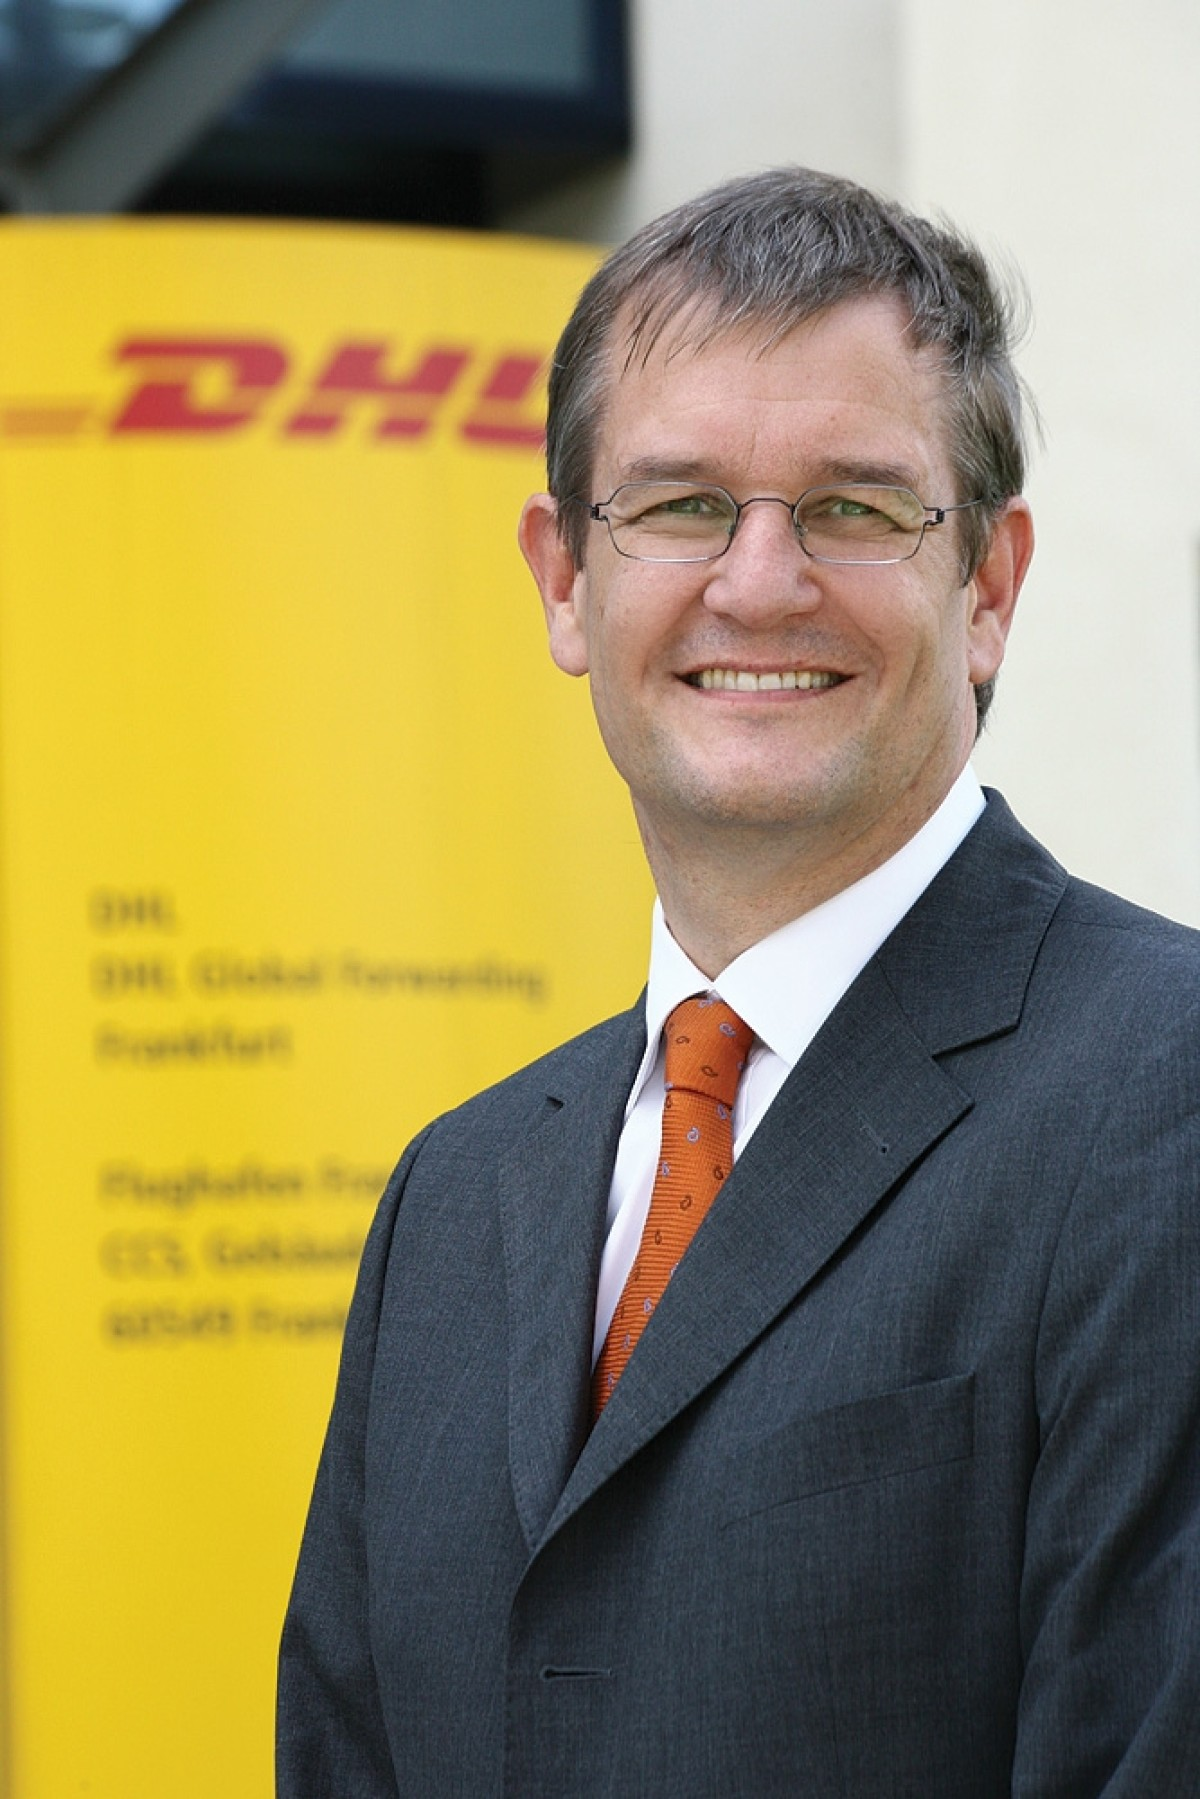 DHL Global Forwarding, Irak ve Türkiye'de önemli a...